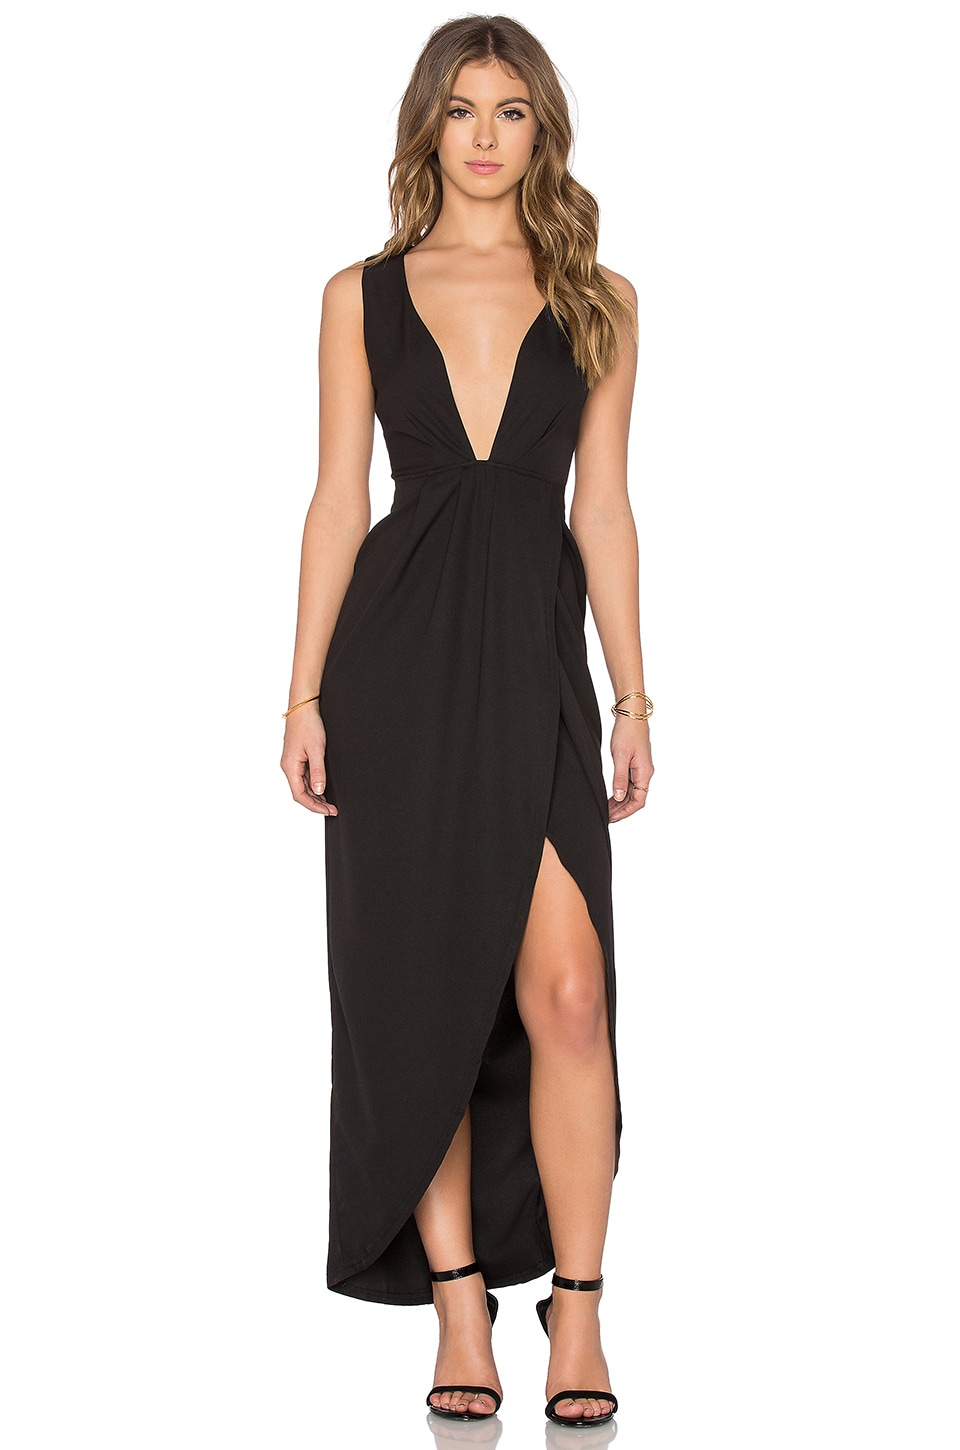 Toby Heart Ginger x Love Indie Lina Cross Front Maxi Dress in Black